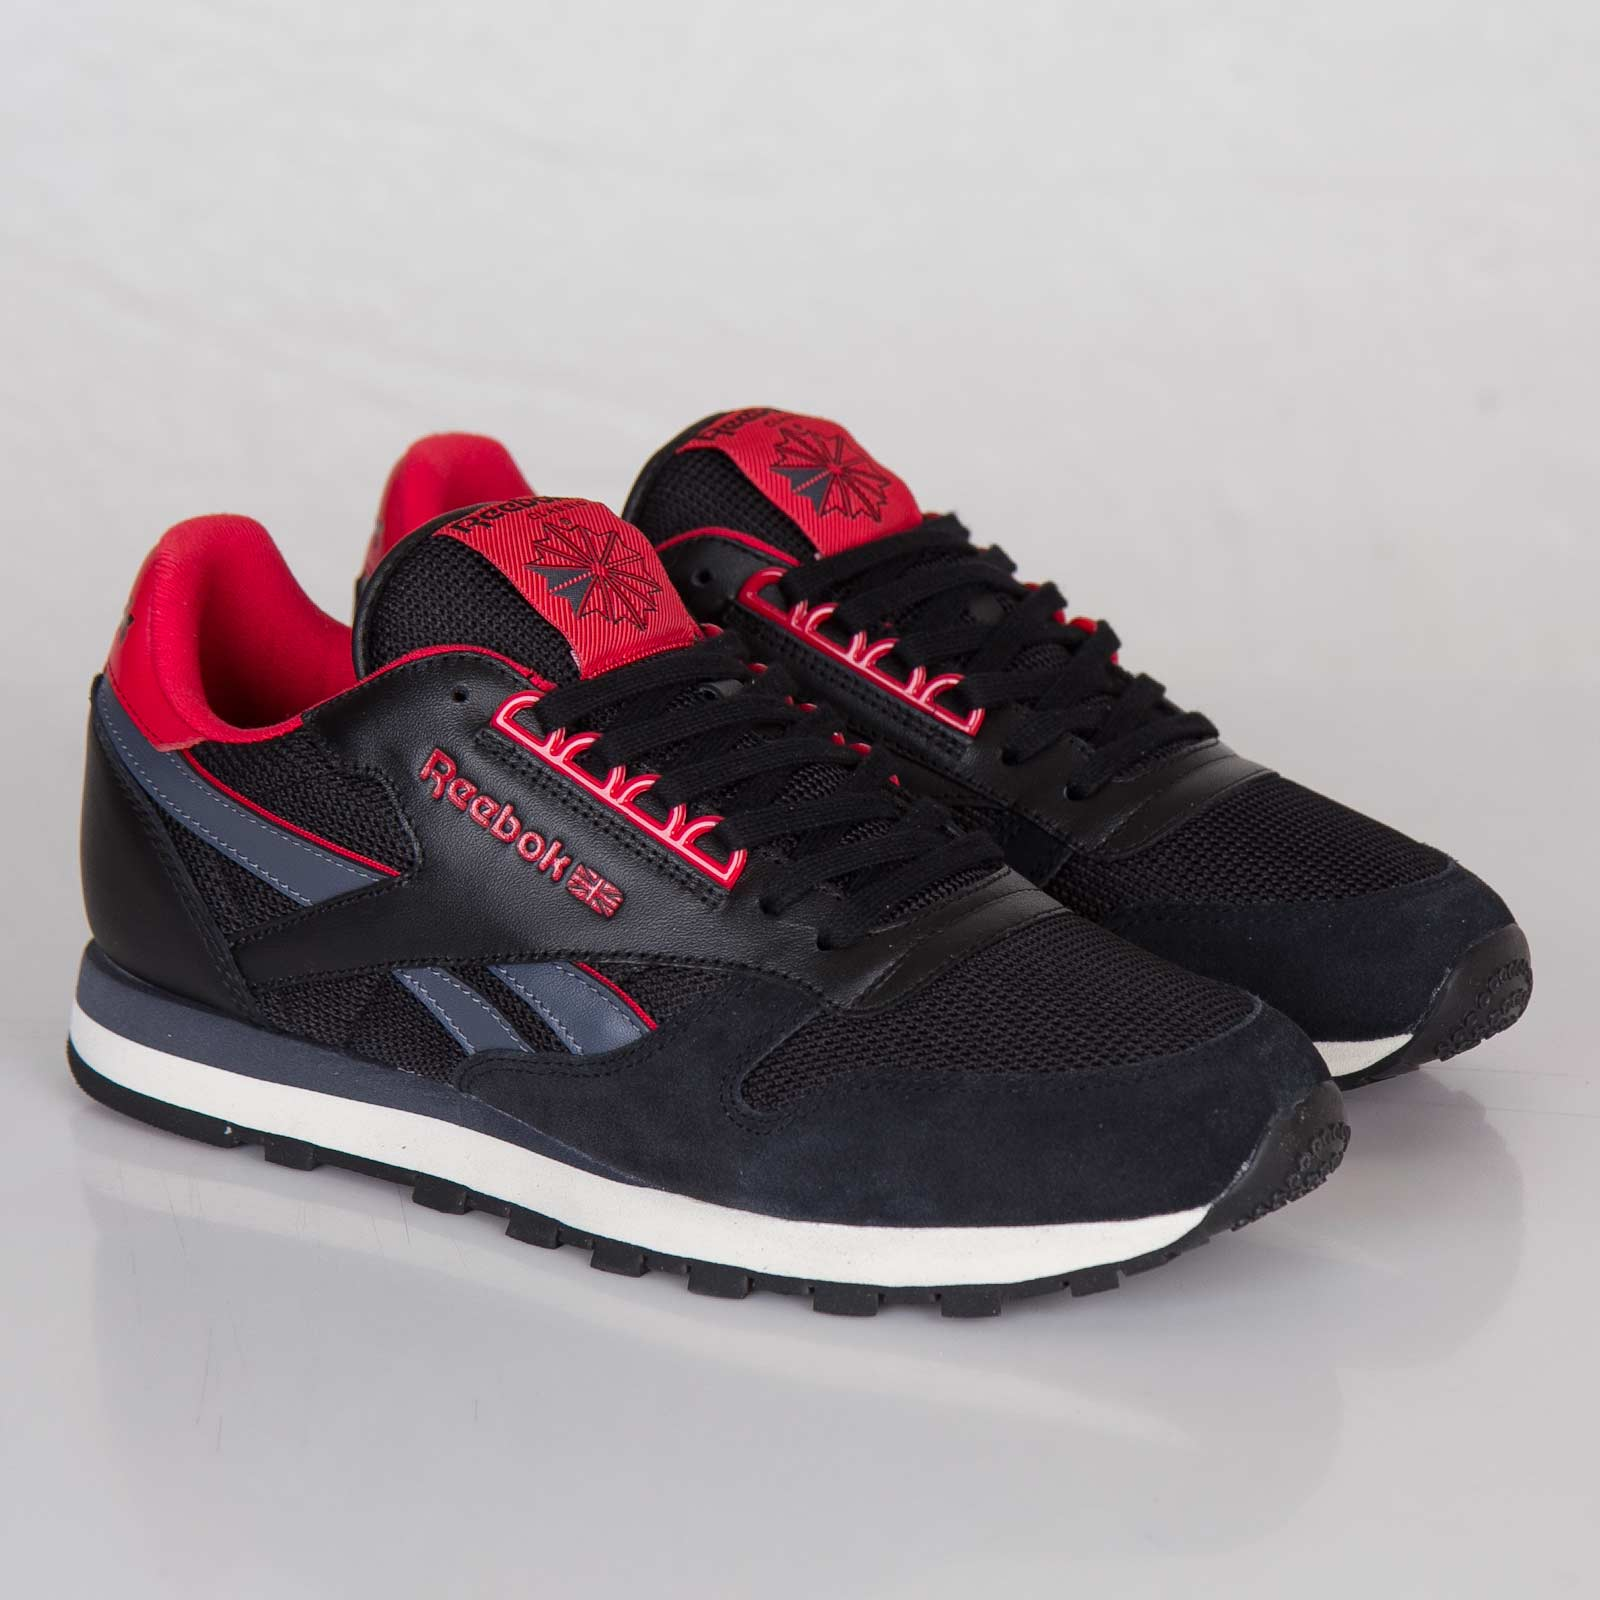 Classic SneakersnstuffSneakers Re Reebok V60015 Leather 2eYEWDH9I